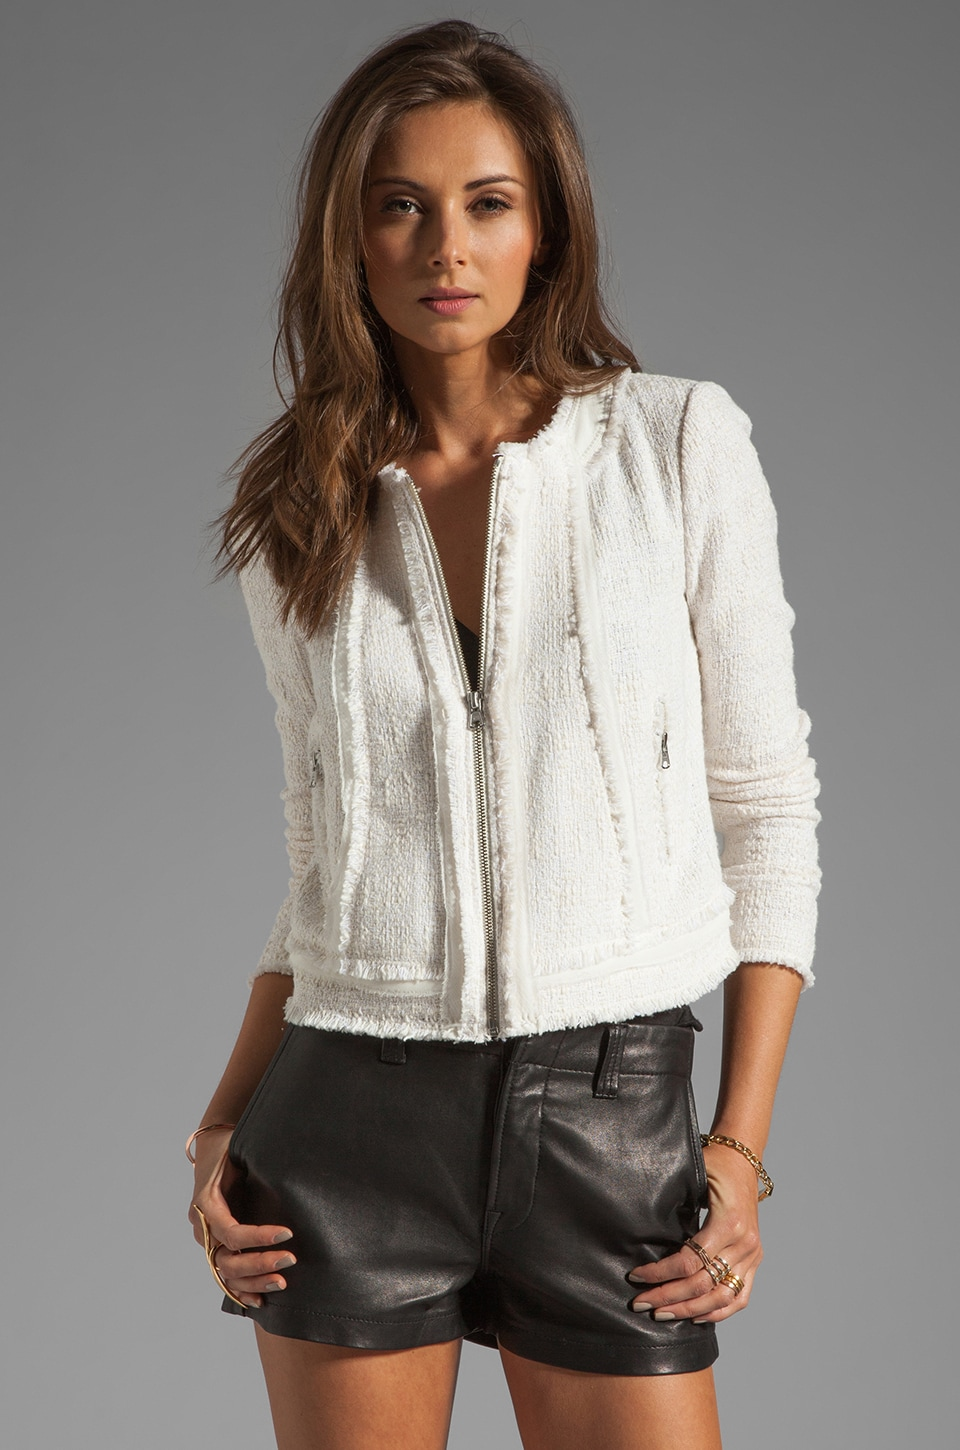 Rebecca Taylor Tweed Jacket in Cream/Optic White